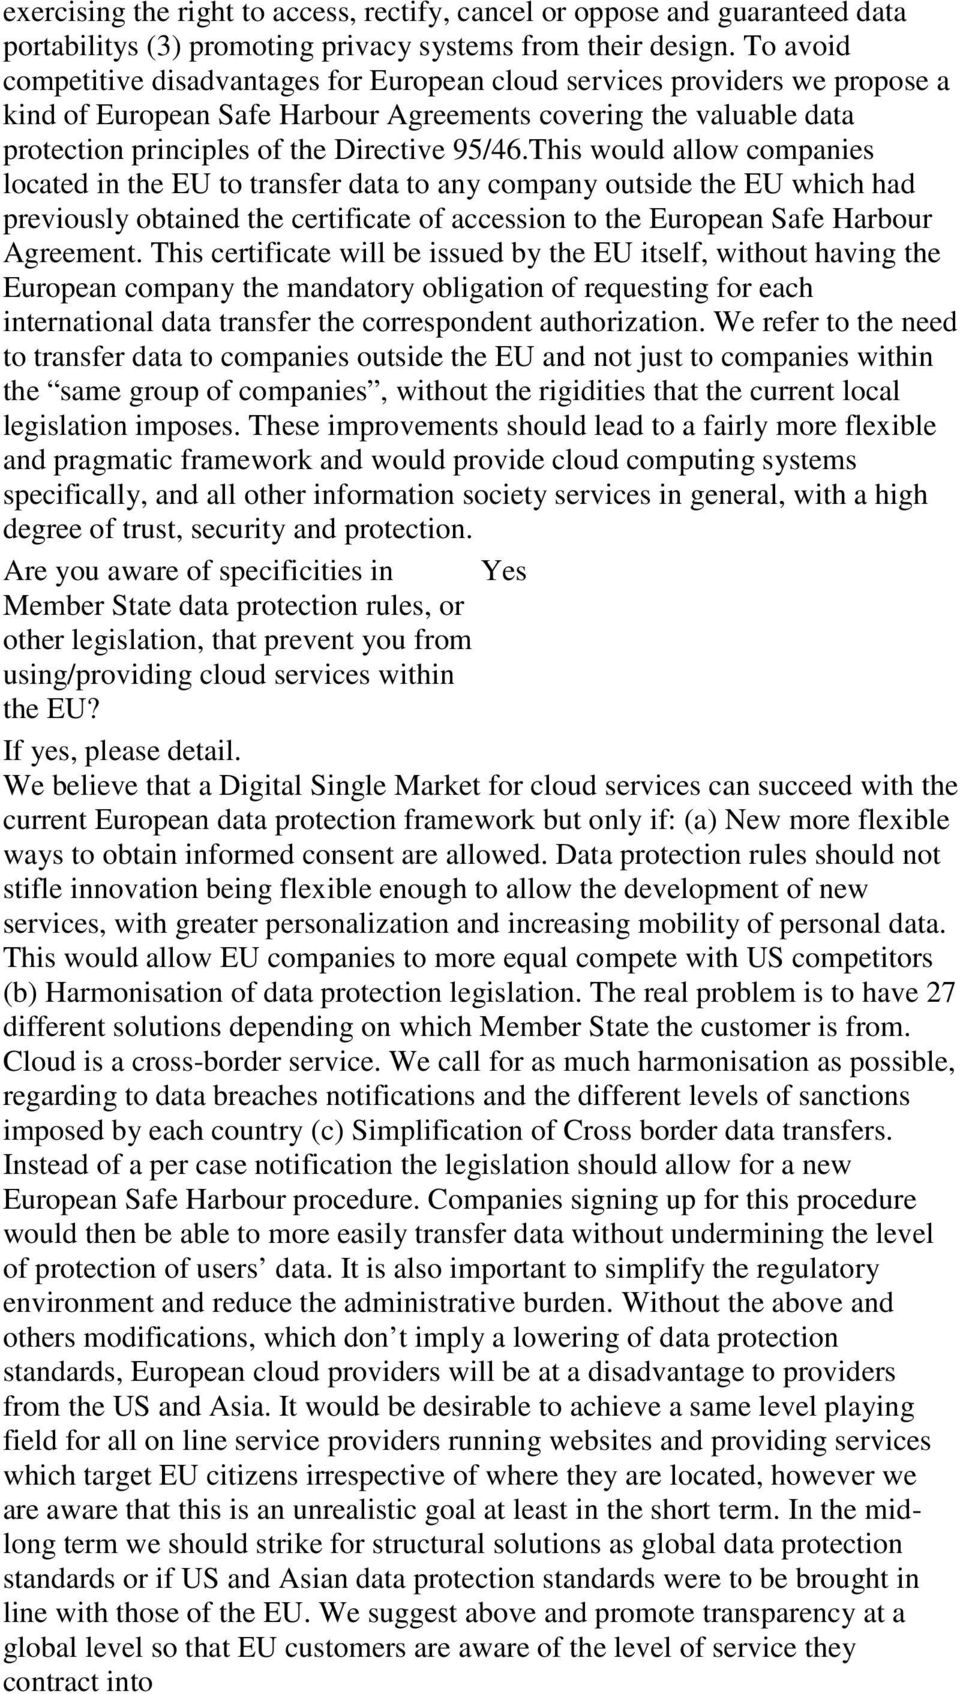 This would allow companies located in the EU to transfer data to any company outside the EU which had previously obtained the certificate of accession to the European Safe Harbour Agreement.